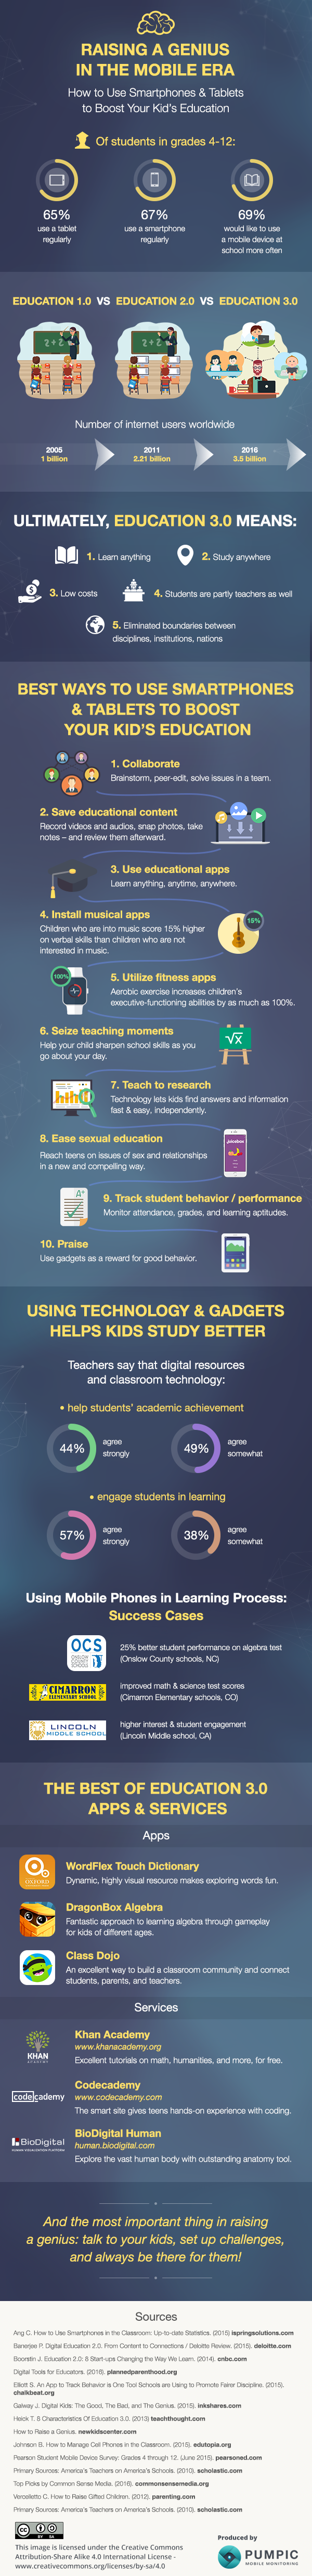 How to Use Smartphones & Tablets to Boost Your Kid's Education #[infographic]